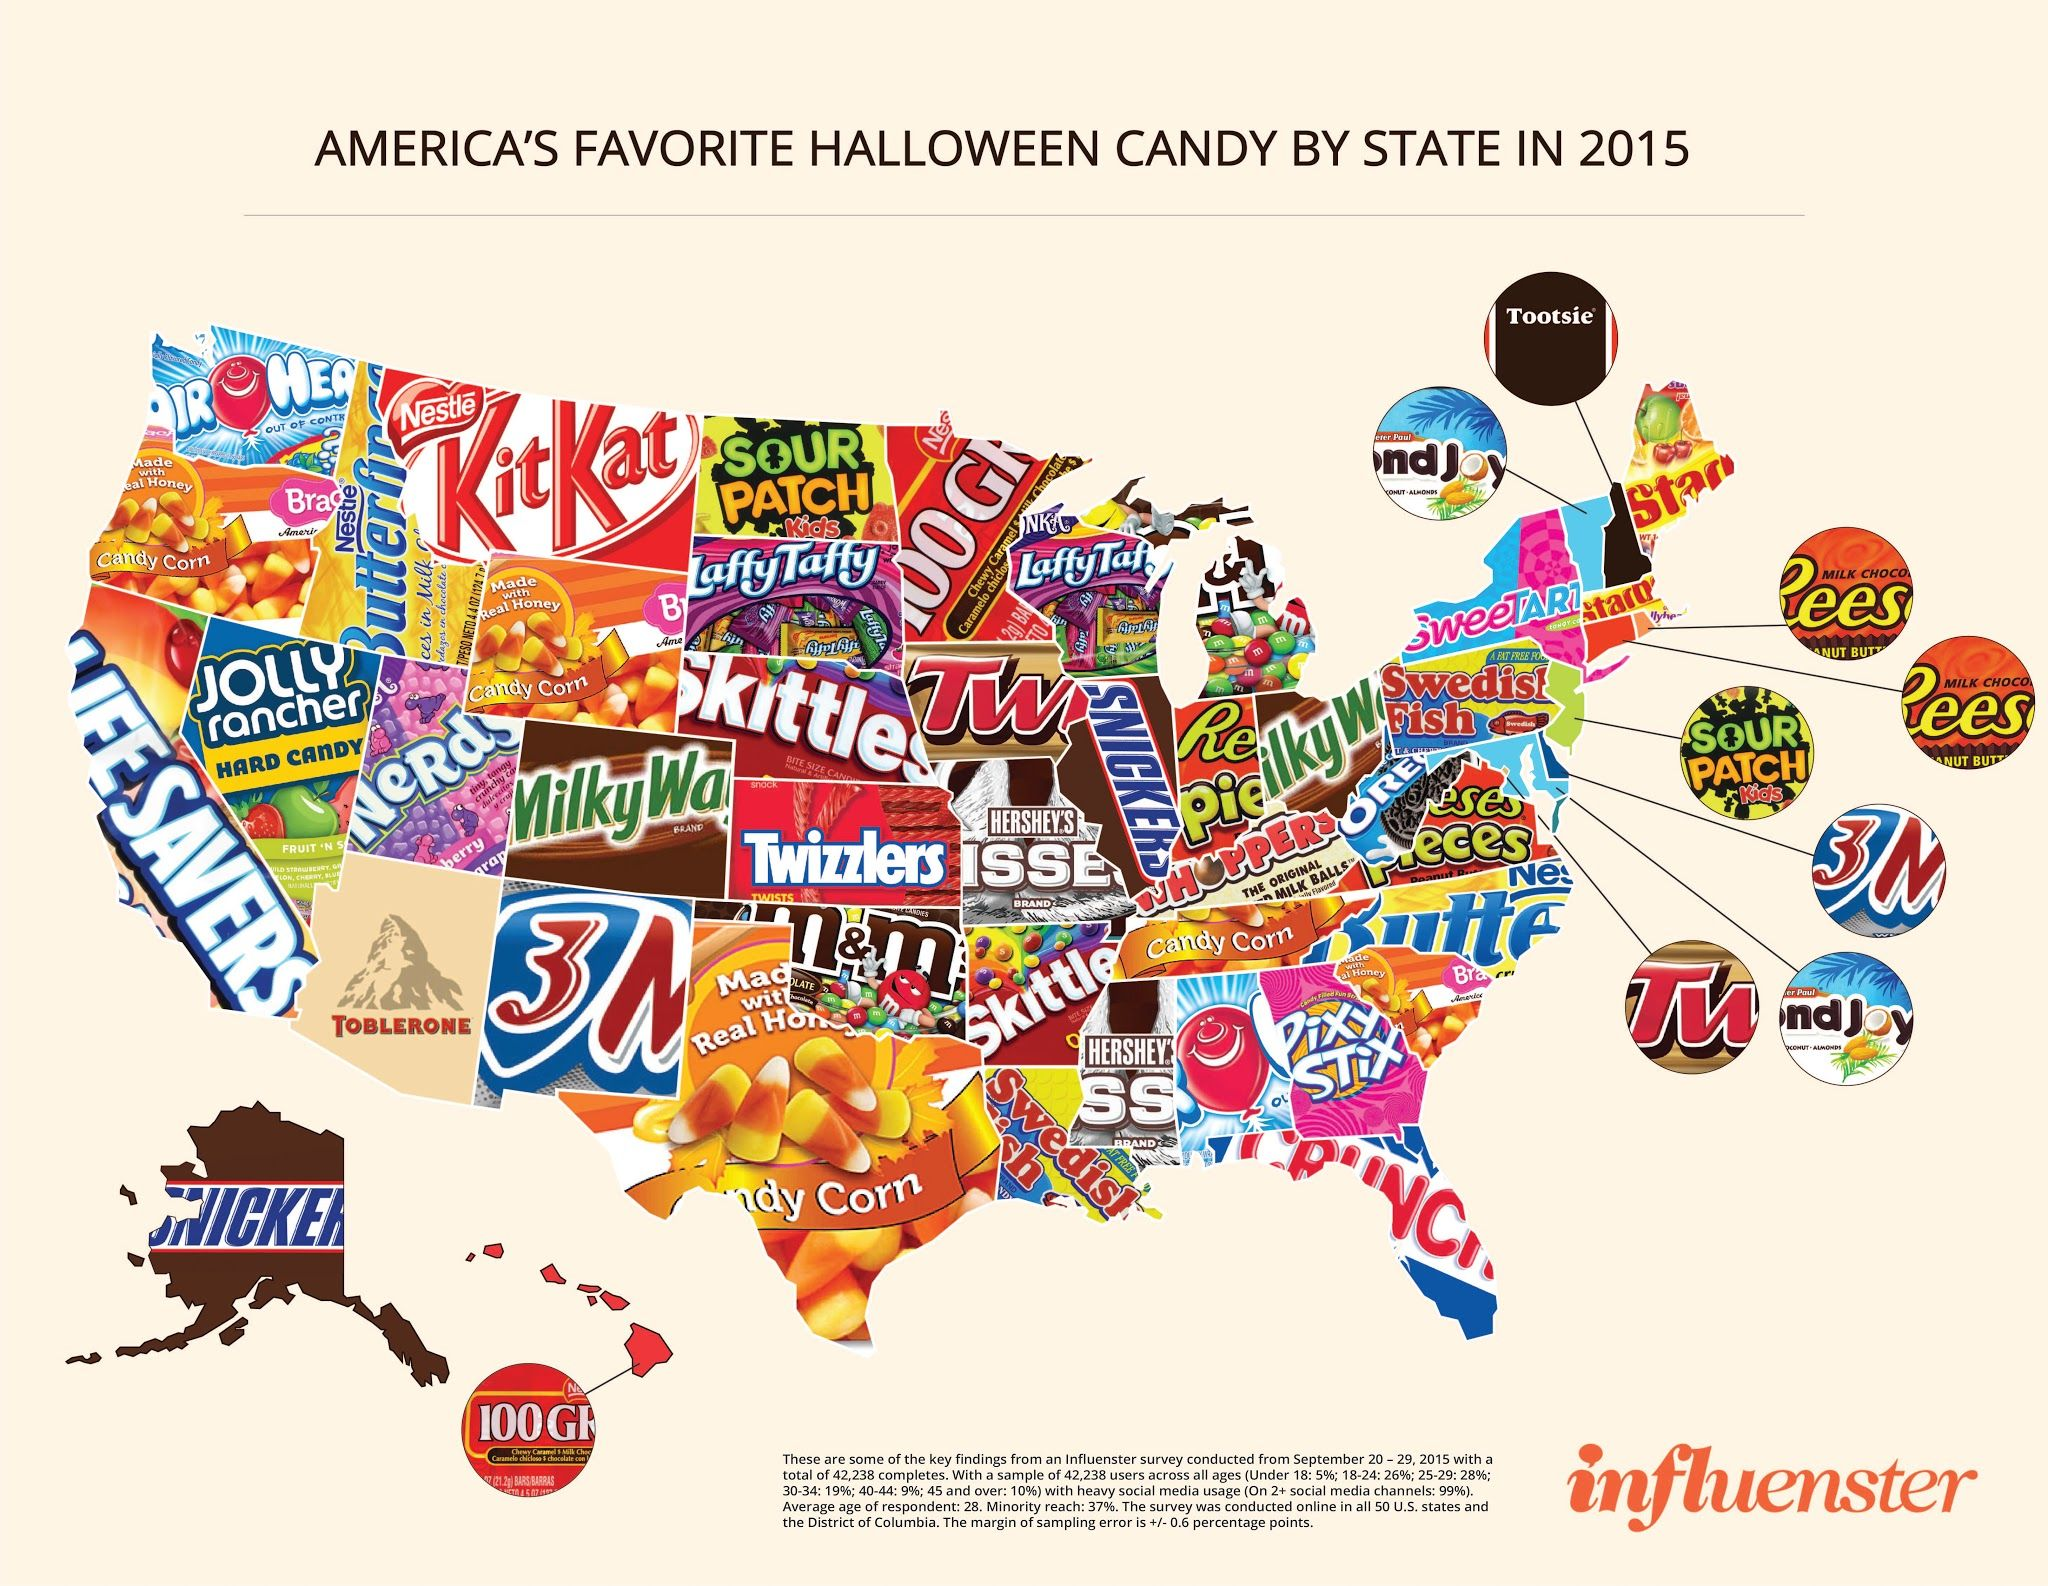 Halloween Candy By State 2020 America's Favorite Halloween Candy State By State | Influenster